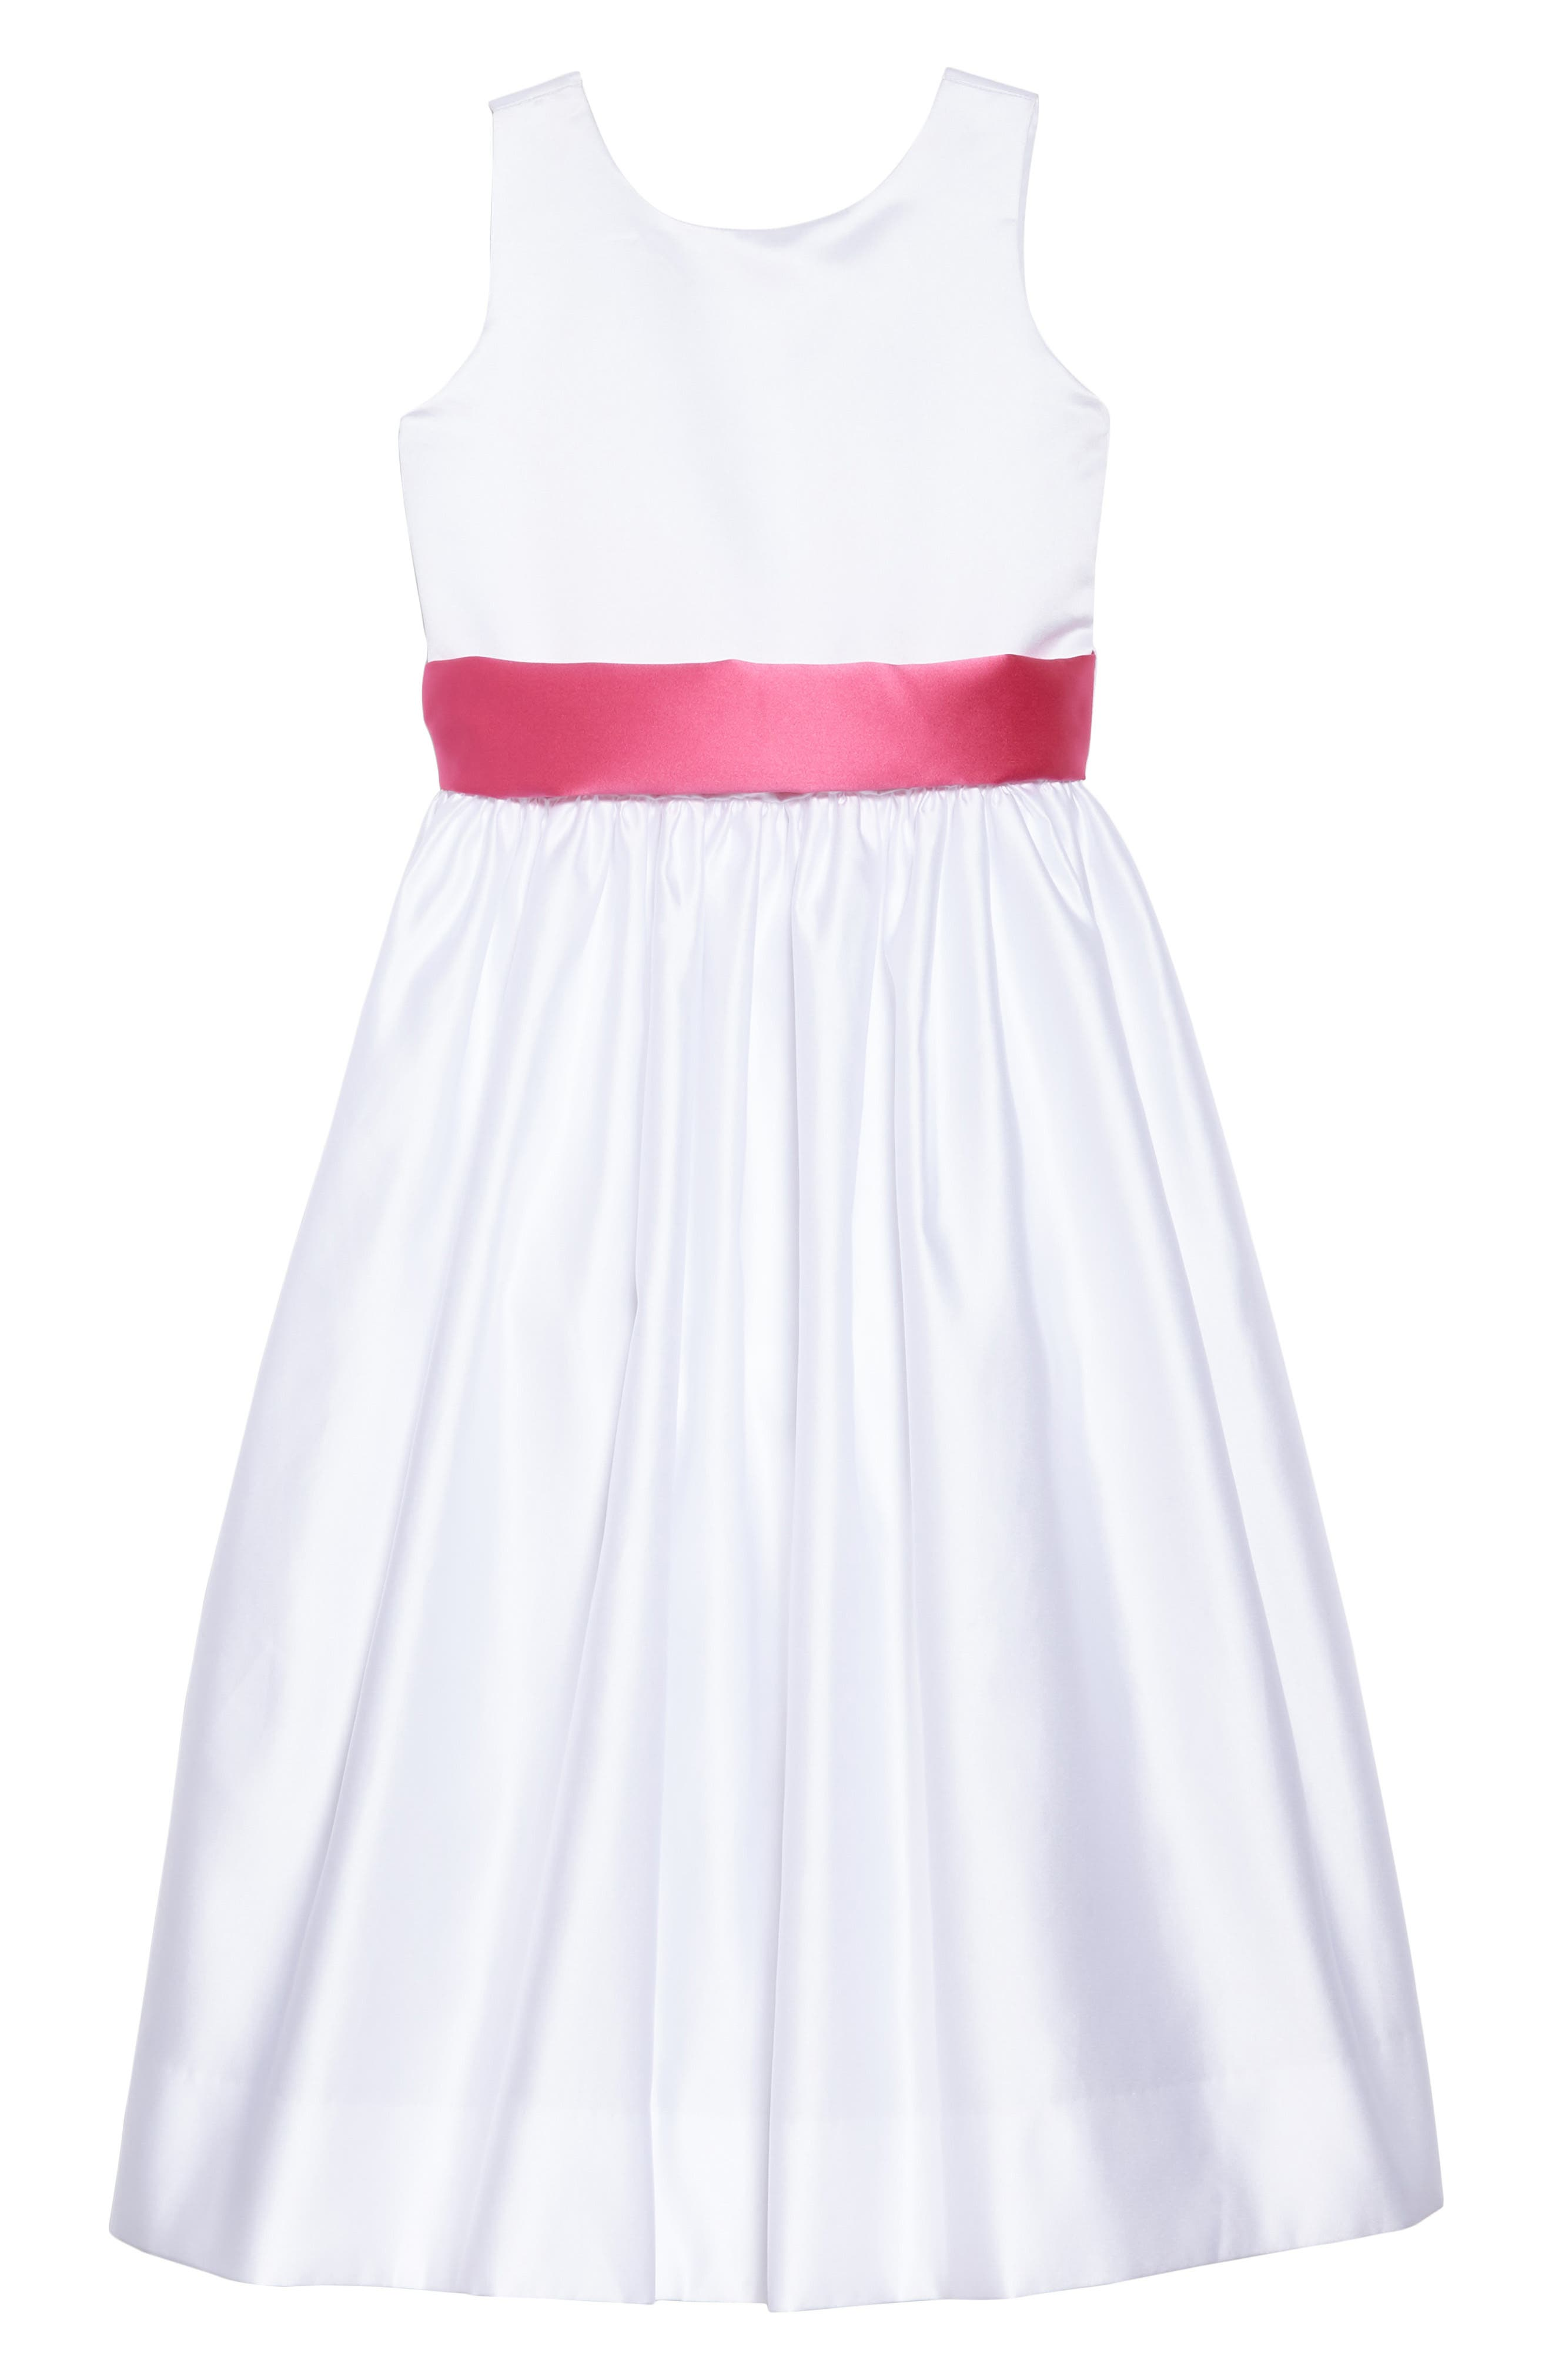 White Tank Dress with Satin Sash,                         Main,                         color, WHITE/ FUCHSIA